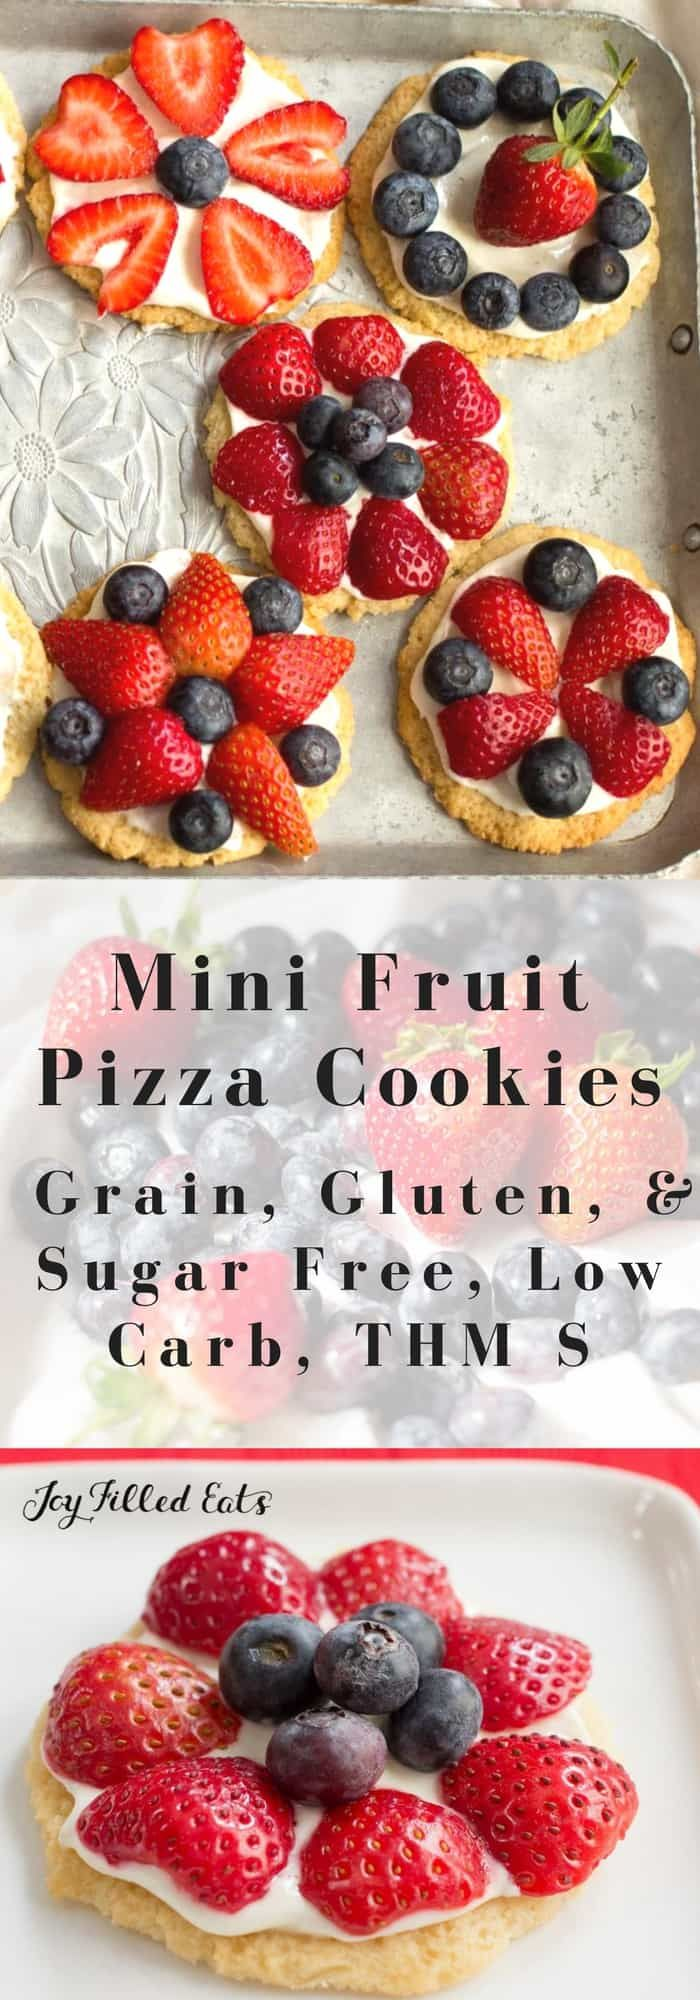 Mini Fruit Pizza Cookies - Low Carb, Grain Gluten Sugar Free, THM S - My Mini Fruit Pizza Cookies are as tasty as they are pretty. With a shortbread crust, cream cheese icing, & fresh berries they are a perfect dessert.